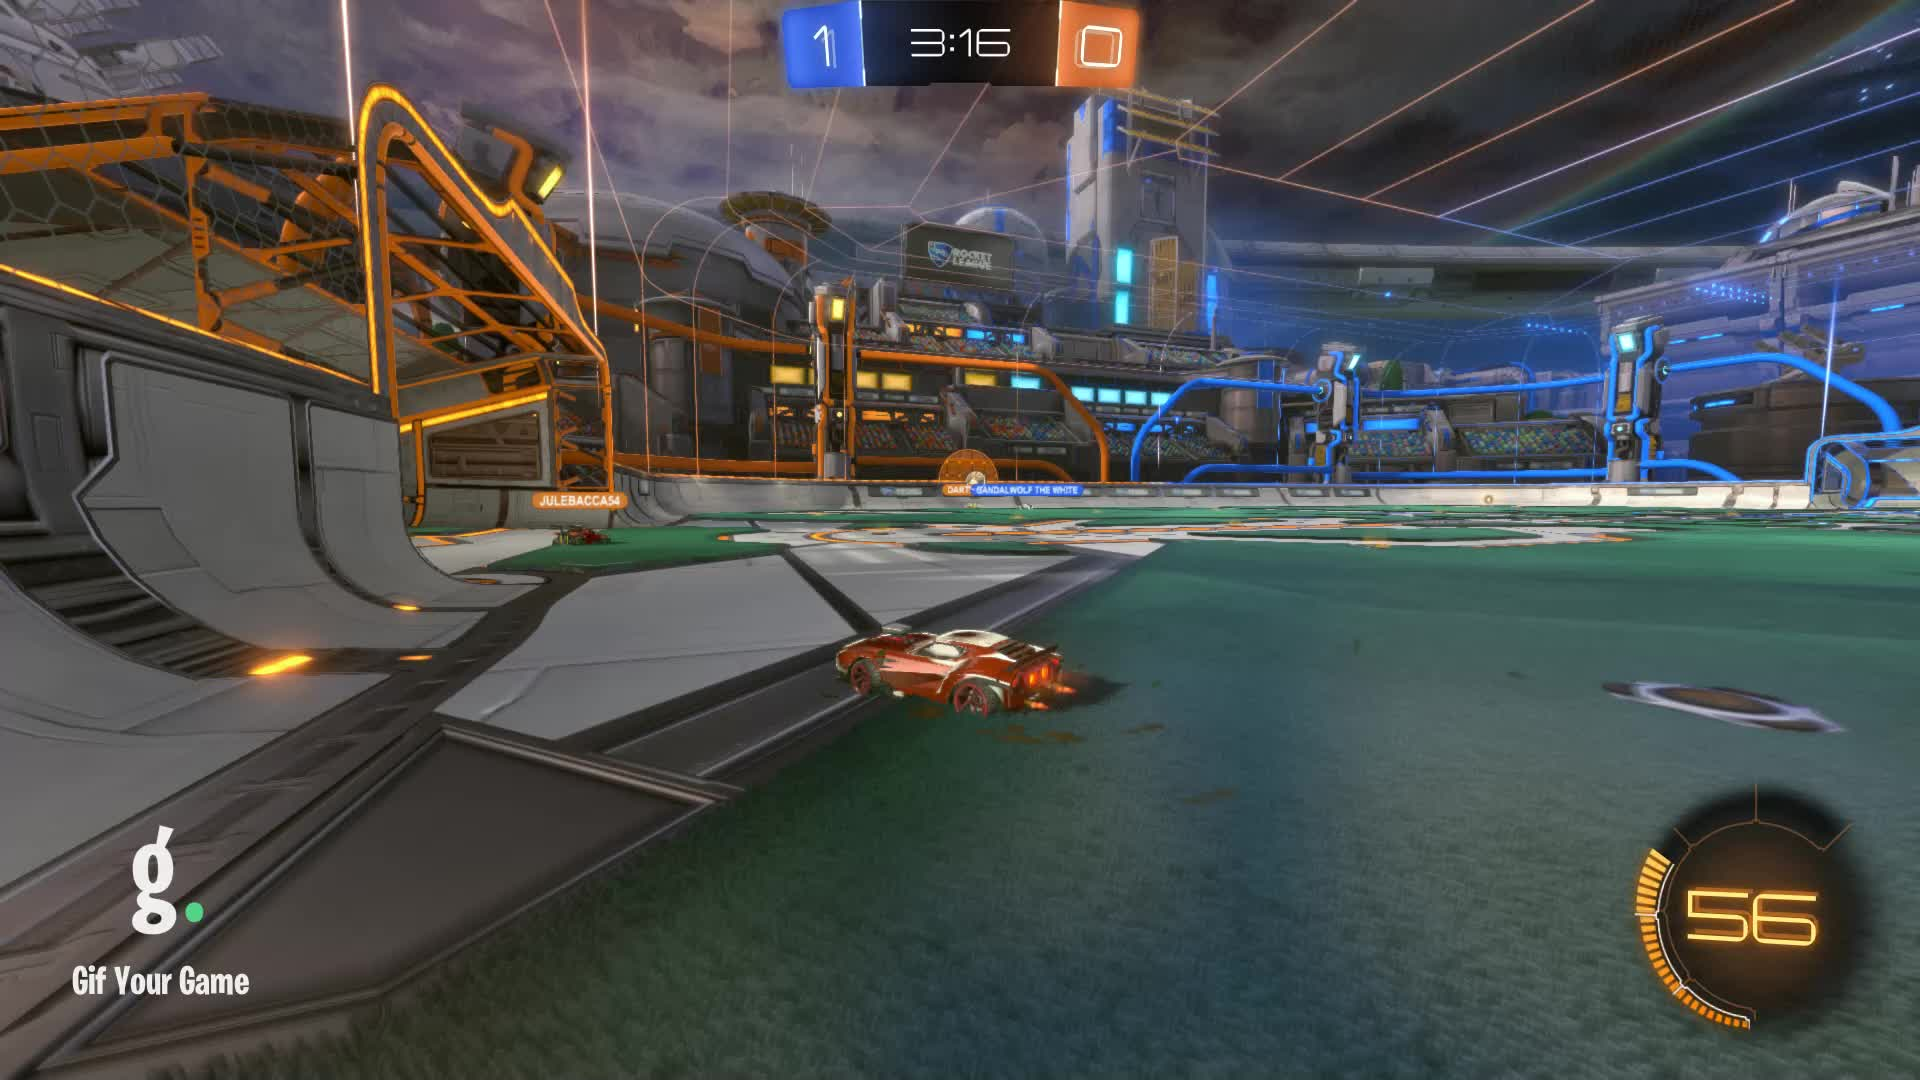 Duck Dodgers, Gif Your Game, GifYourGame, Goal, Rocket League, RocketLeague, Goal 2: Duck Dodgers GIFs